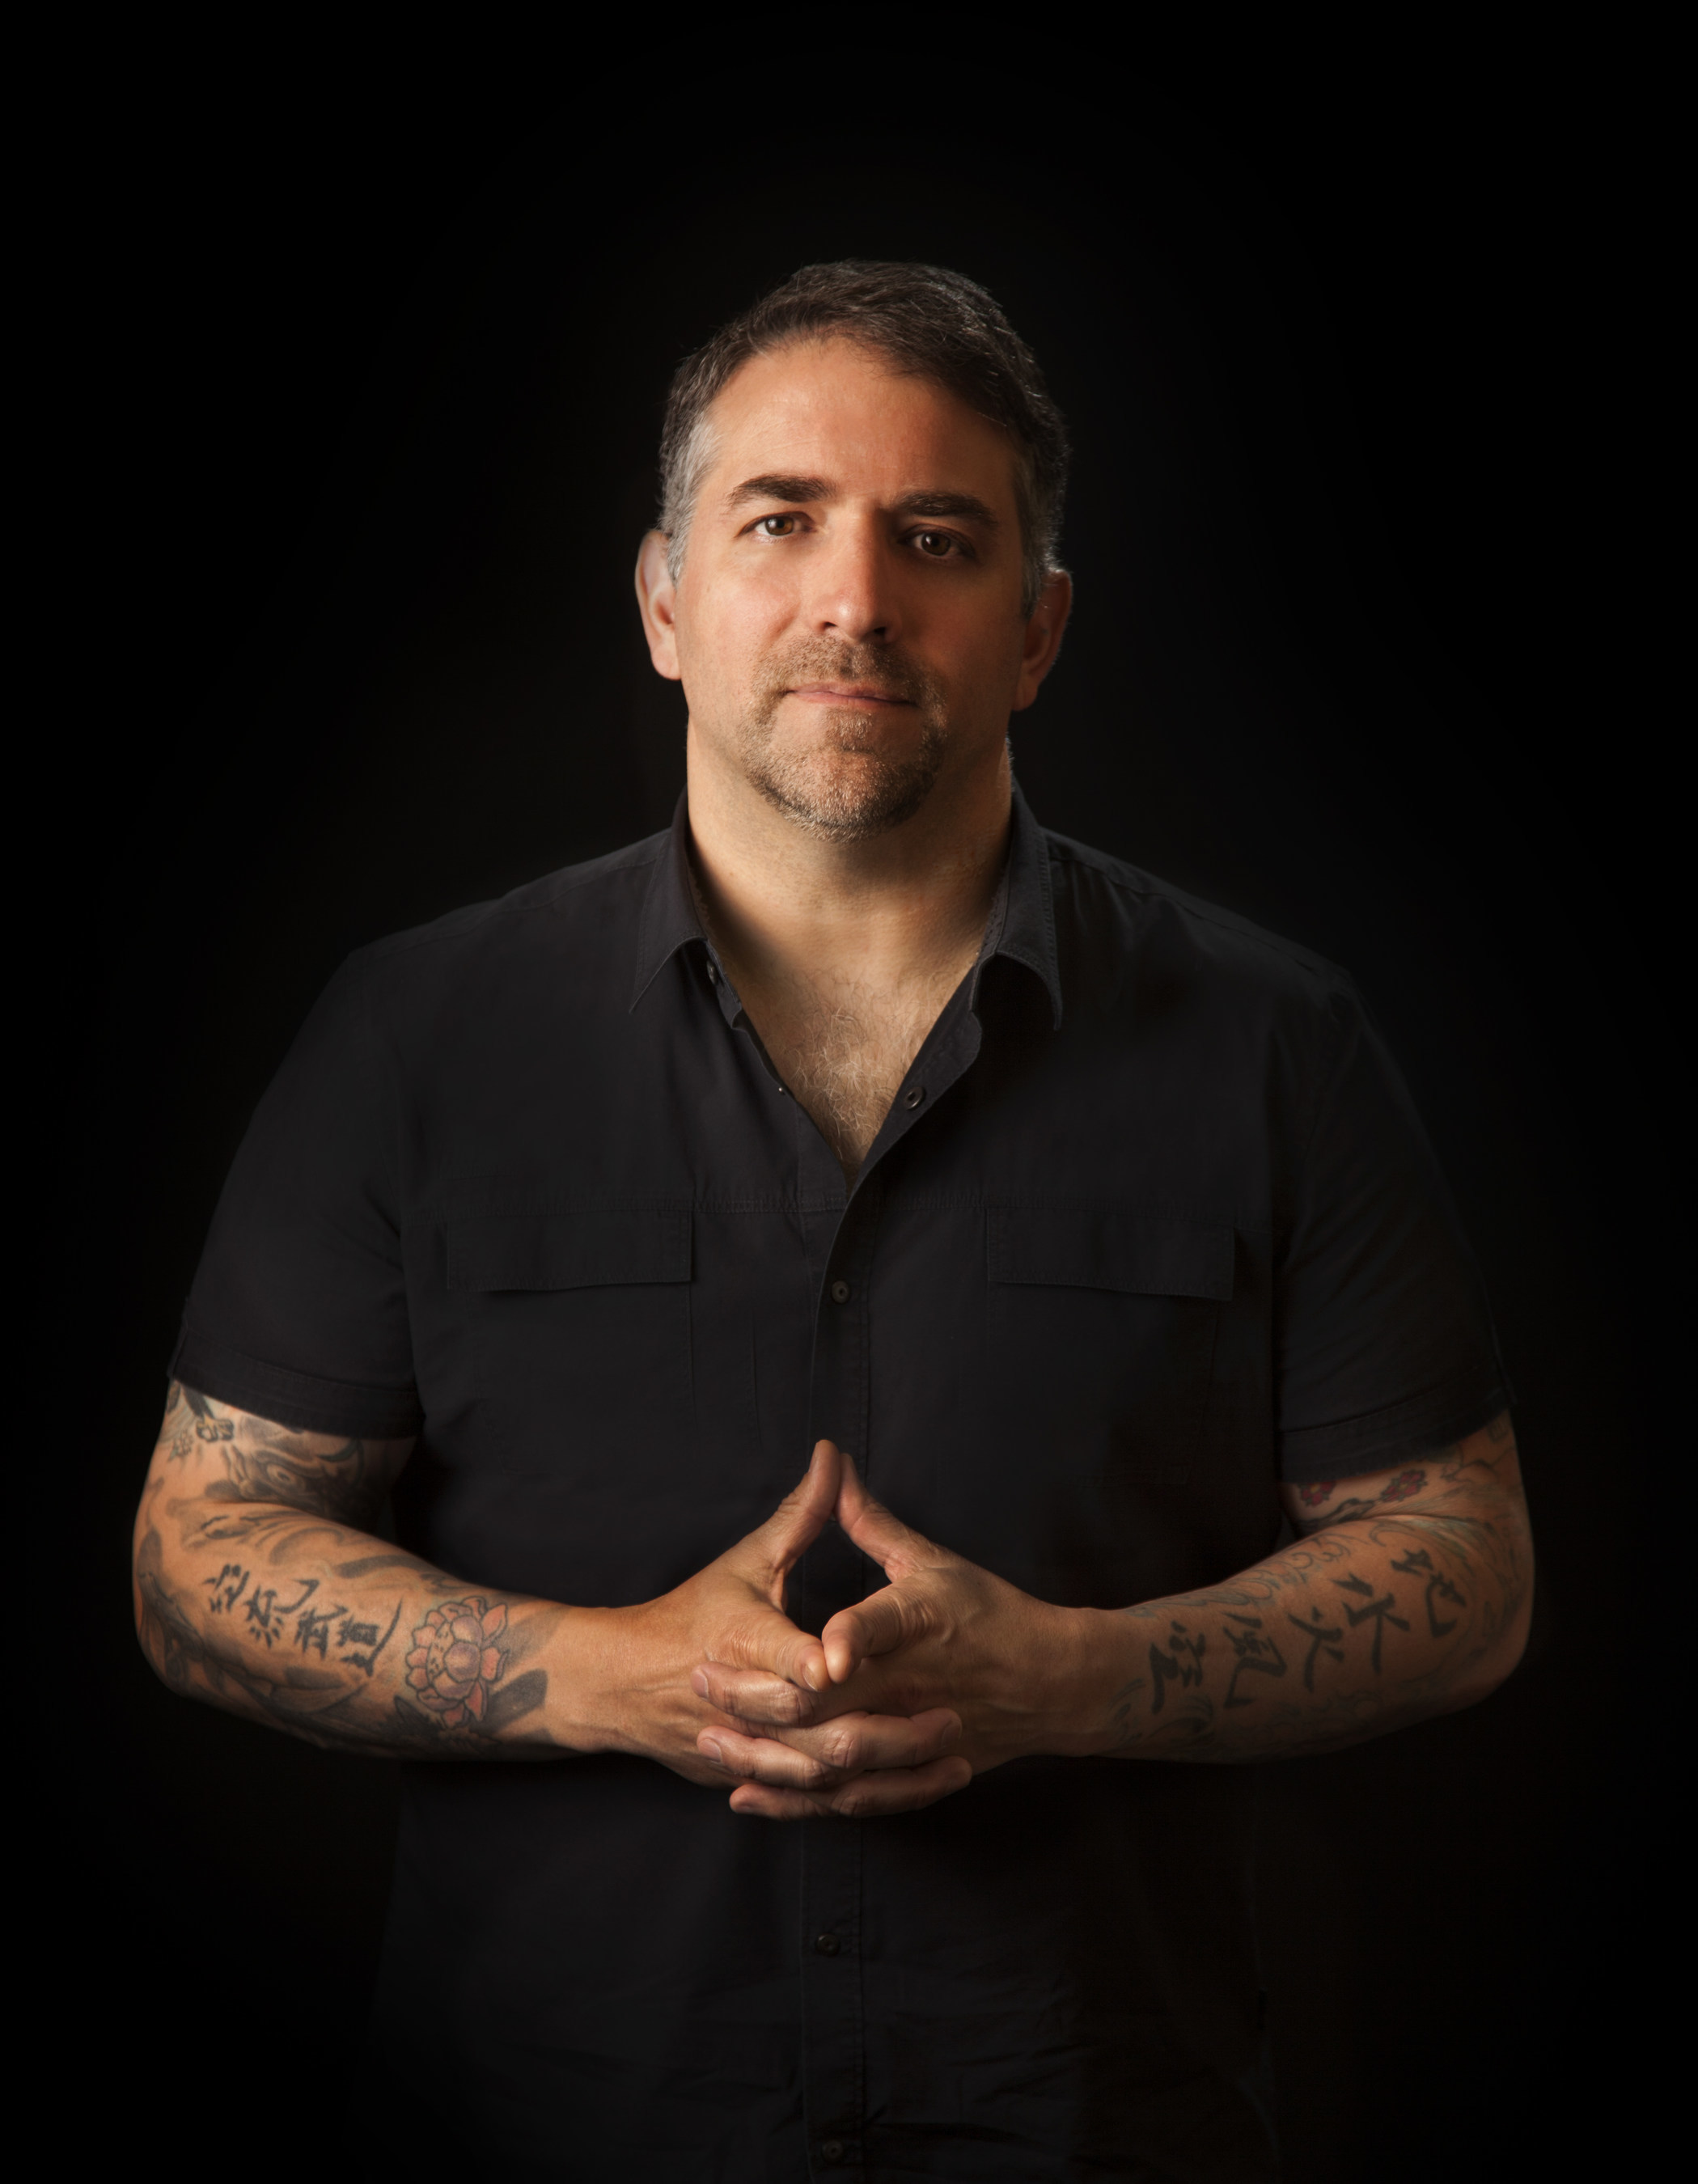 Mike Agugliaro of CEO Warrior to Present at 2016 WWETT Show